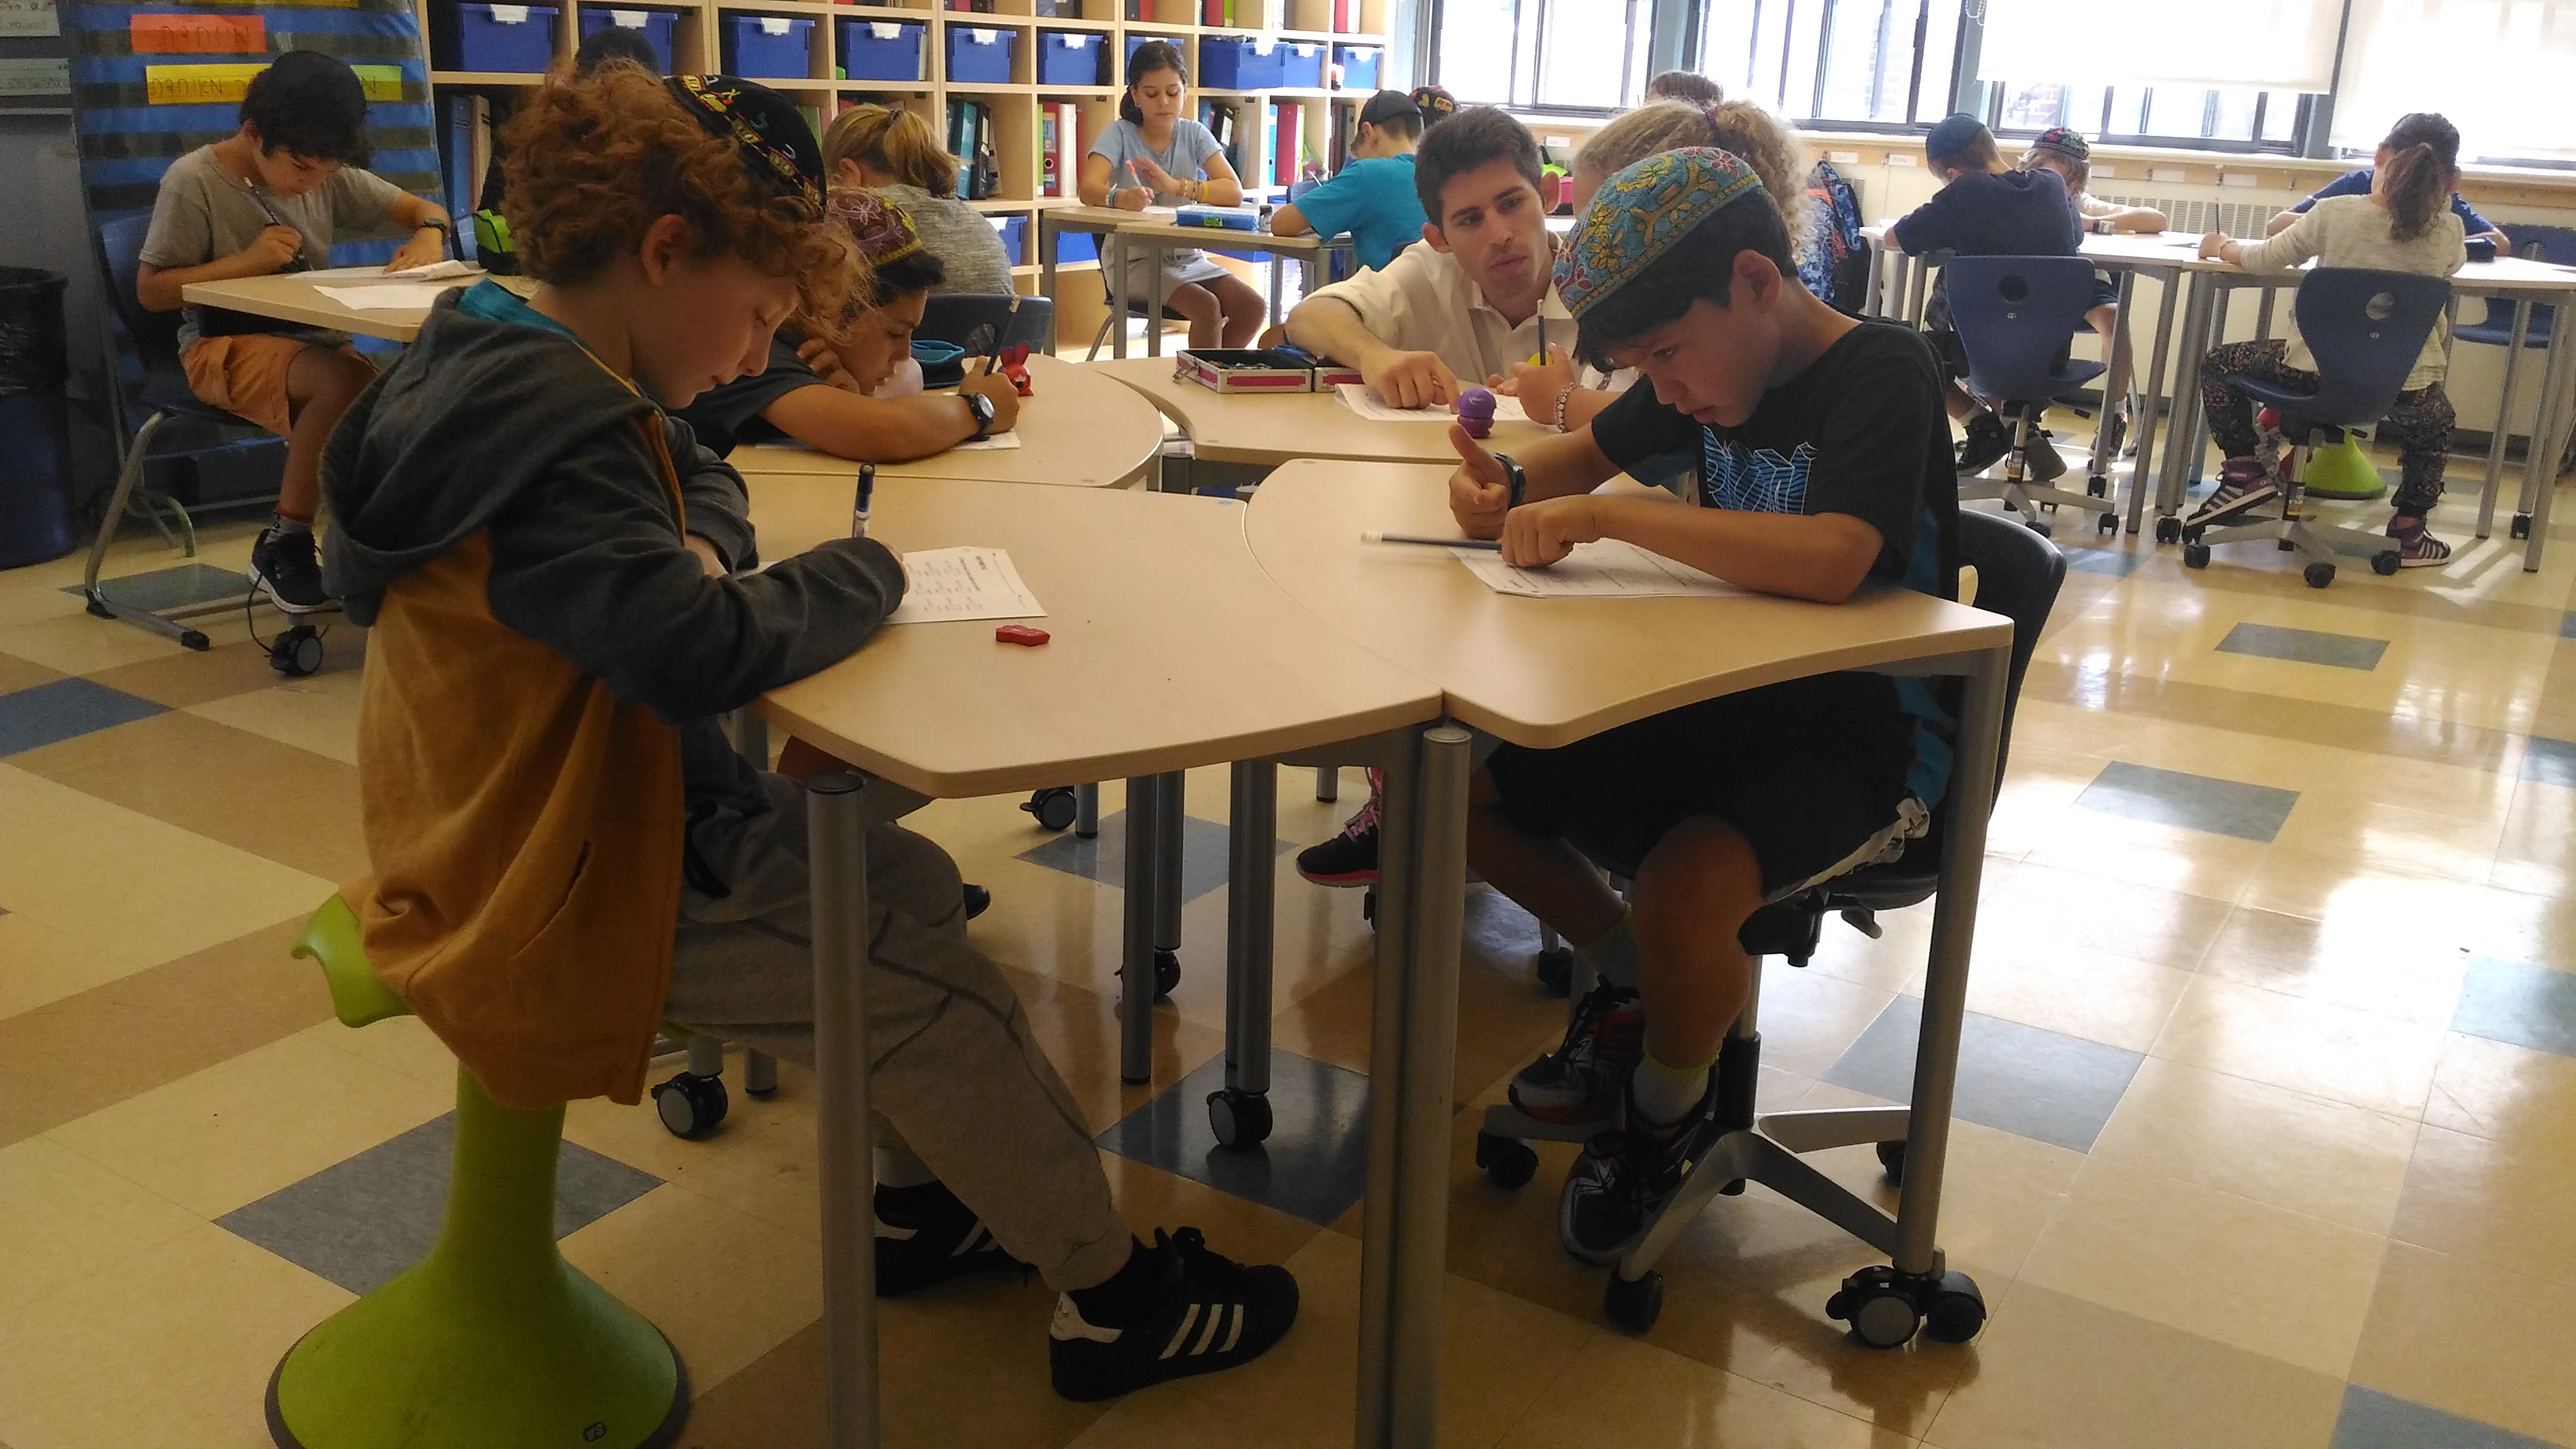 Classroom Design To Promote Literacy : New classroom design to promote more active learning